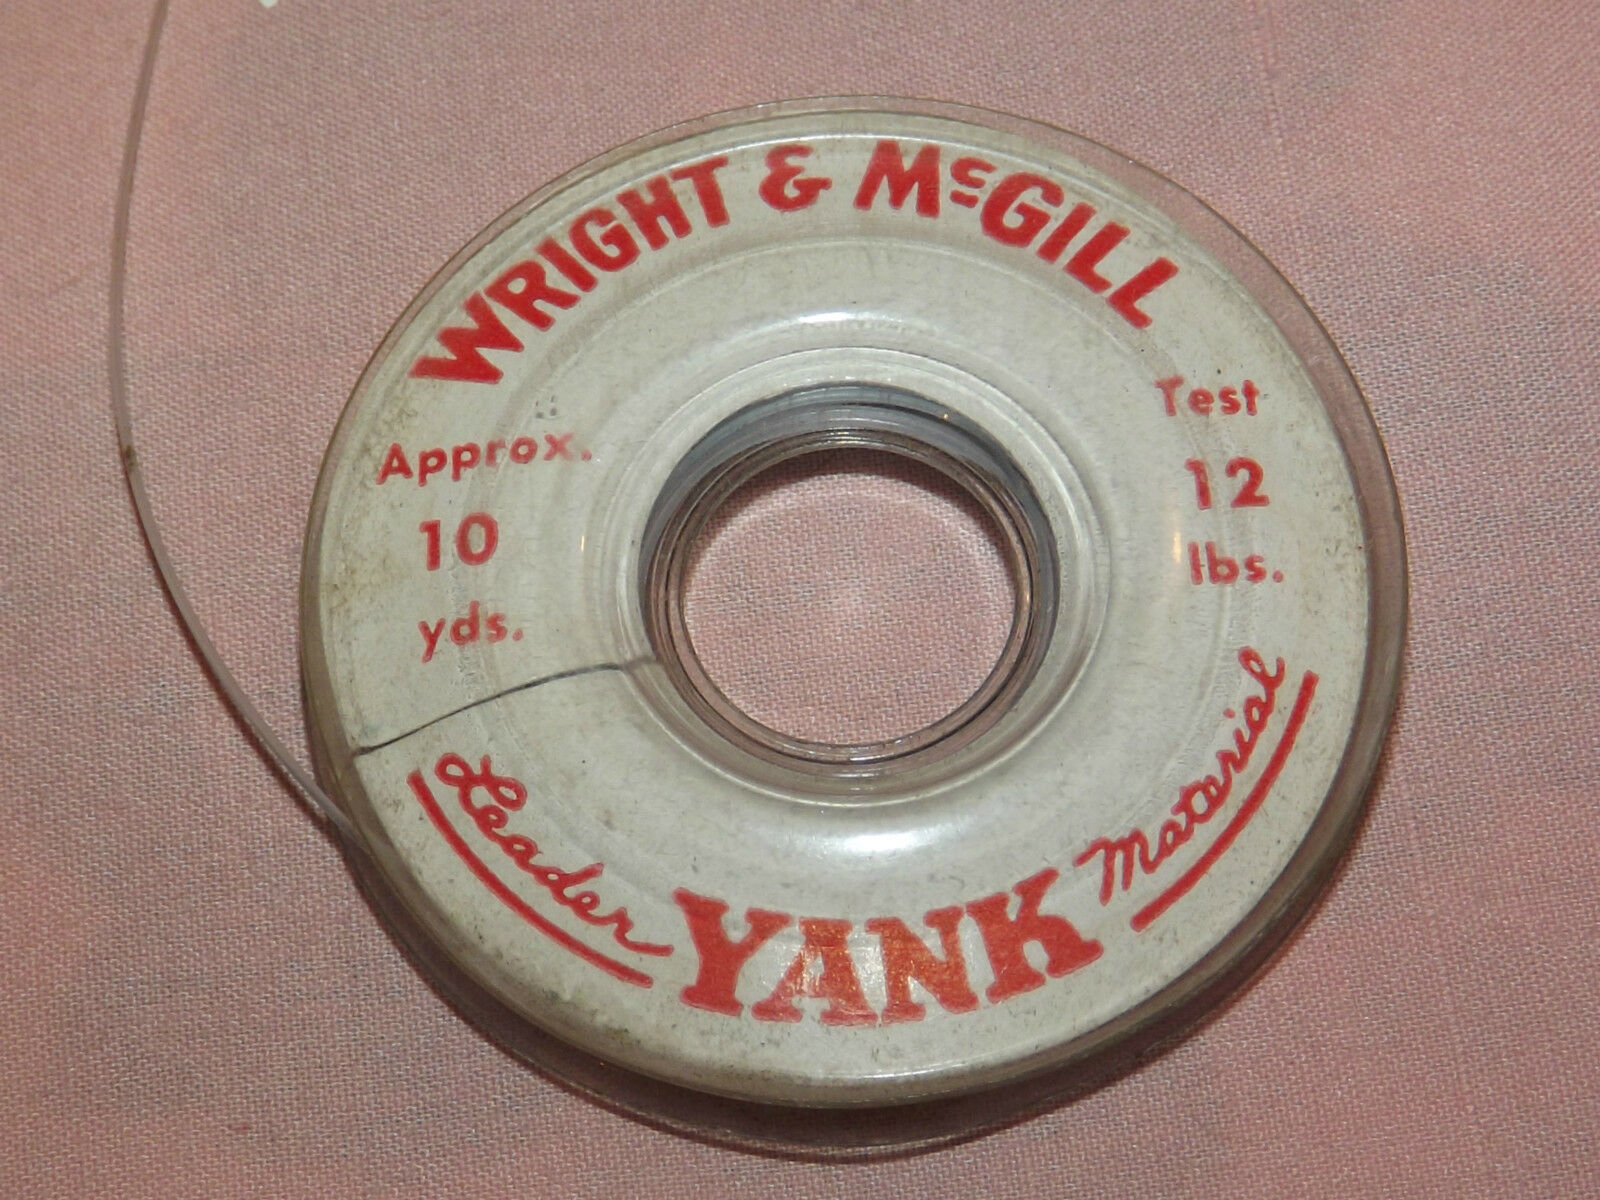 VINTAGE  1930S FISHING WRIGHT & MCGILL LEADER YANK  8 YD 20 LBS TEST STRING LINE